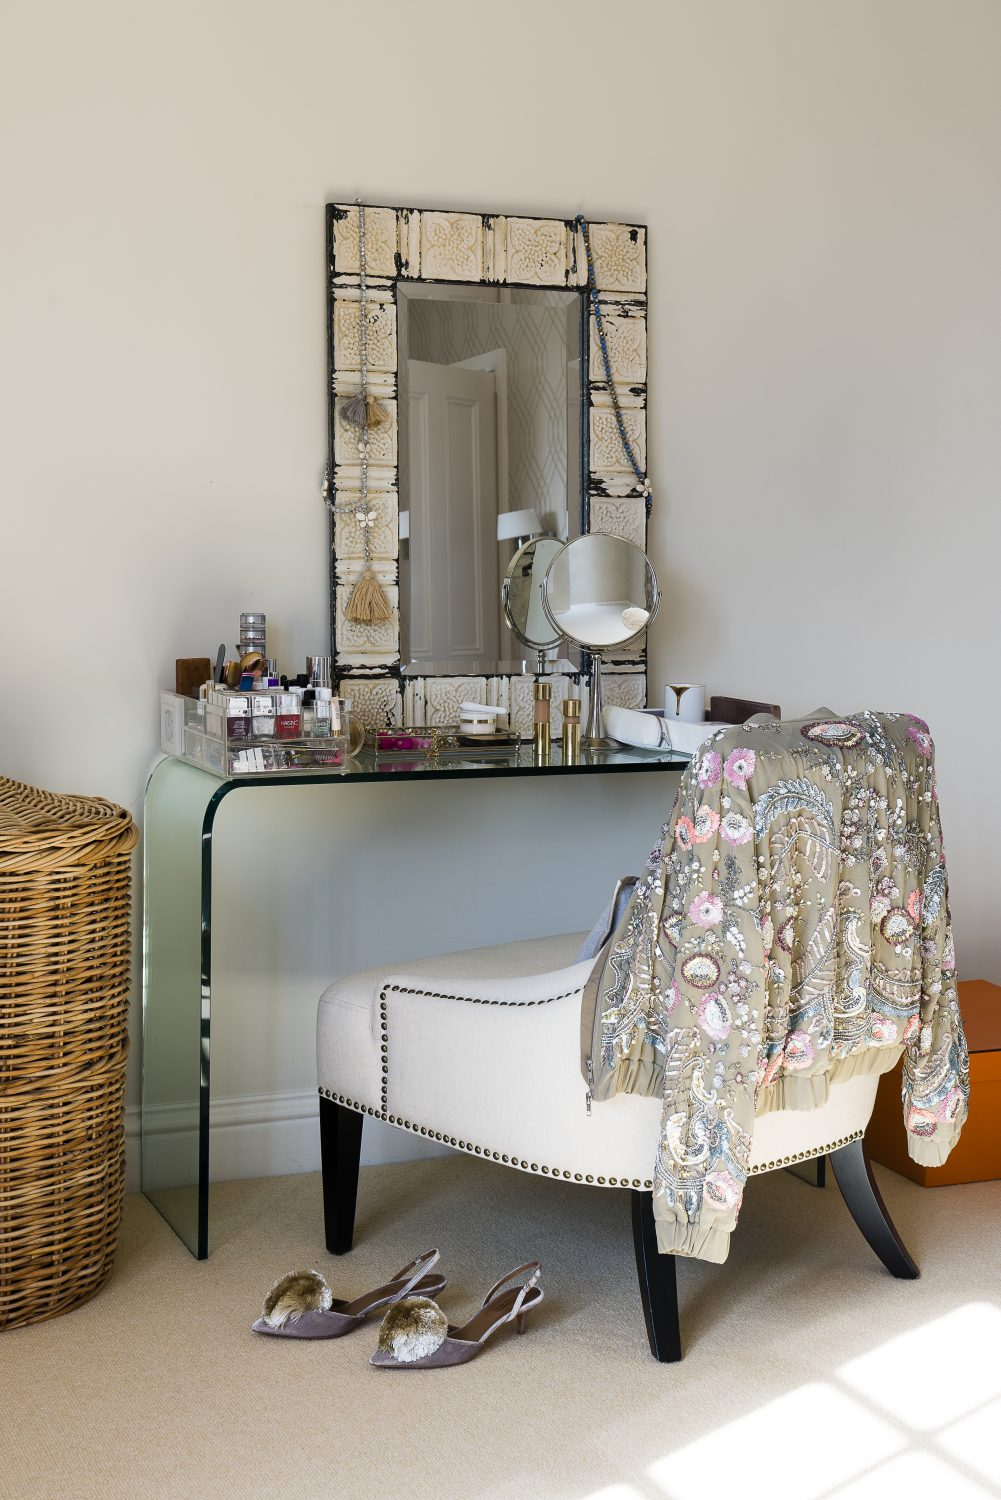 Sara's dressing table is from 1stdibs.com and the mirror behind is from US interiors store Lillian August.The jacket on the chair is a favourite jacket by Needle & Thread